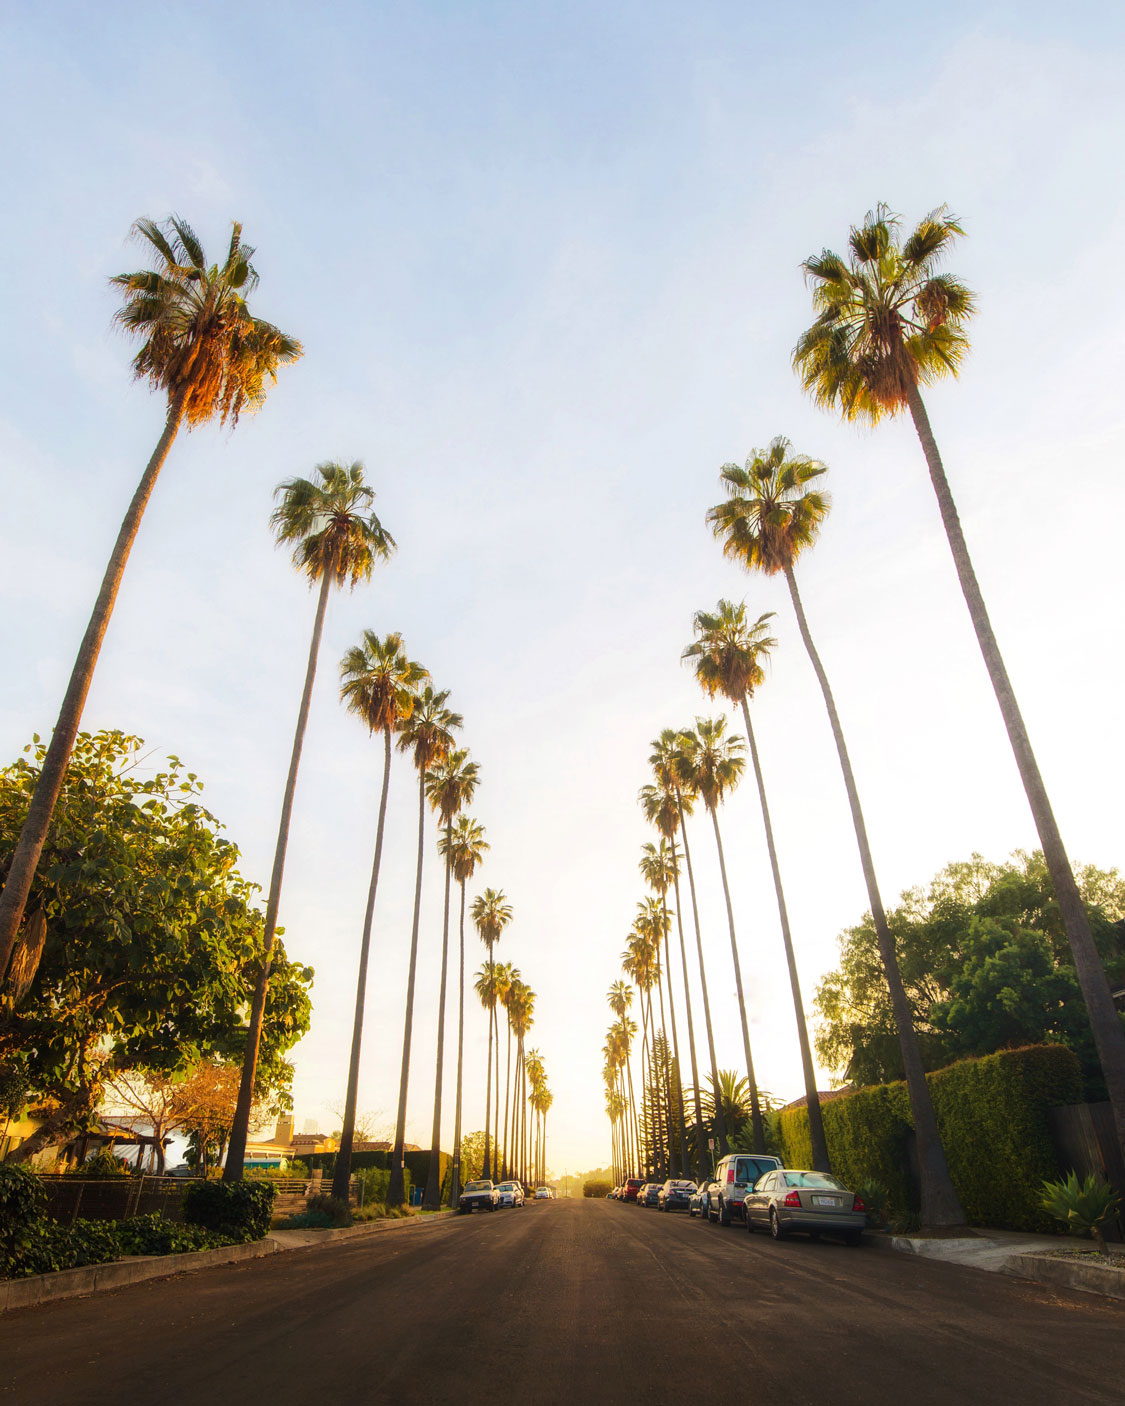 Best Places to Take Pictures in LA/@tommylundberg